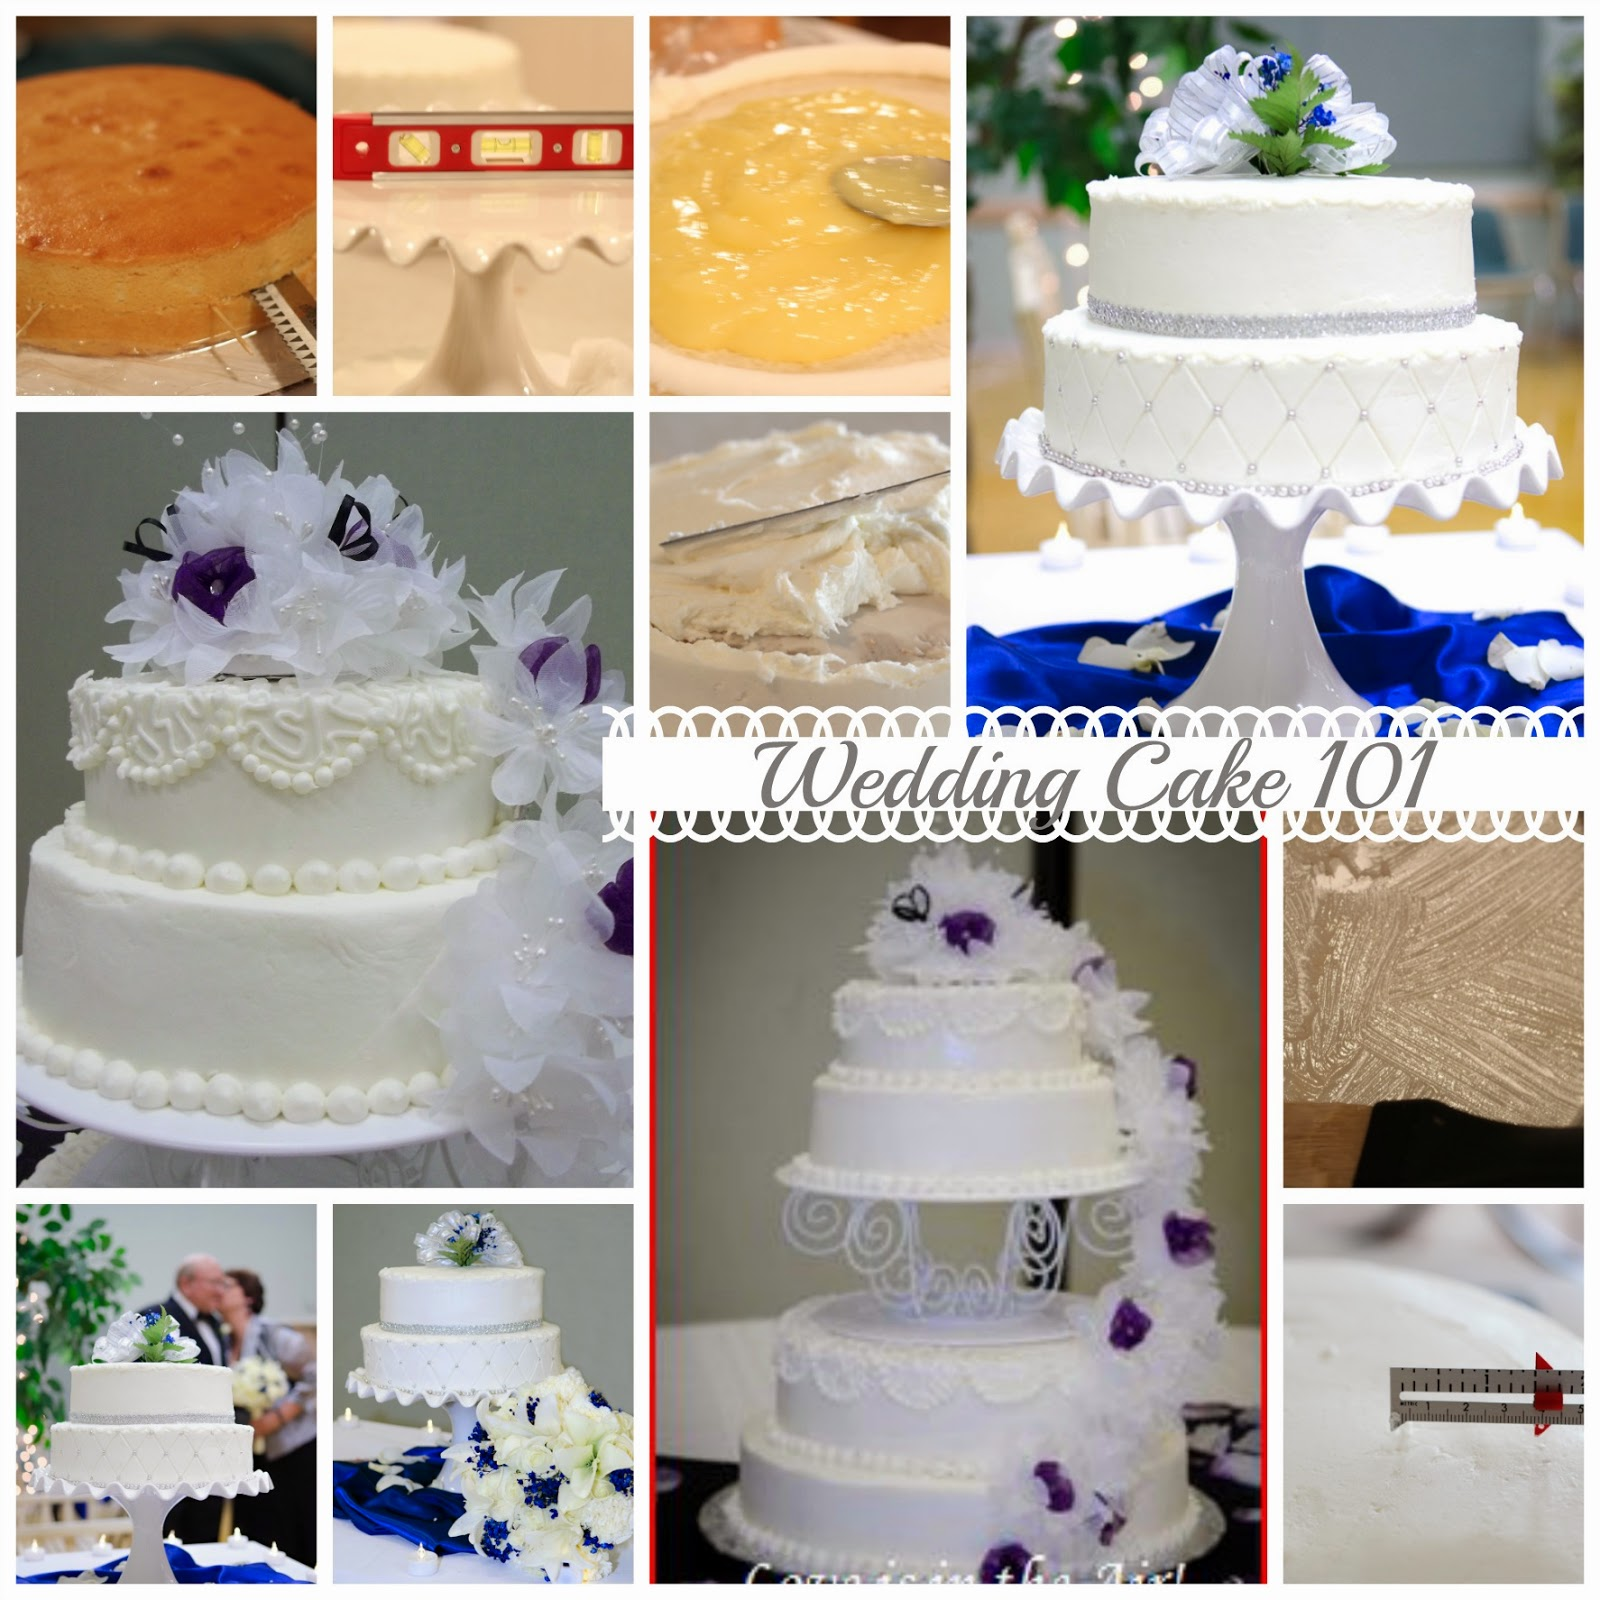 How to make a Wedding Cake Tutorial